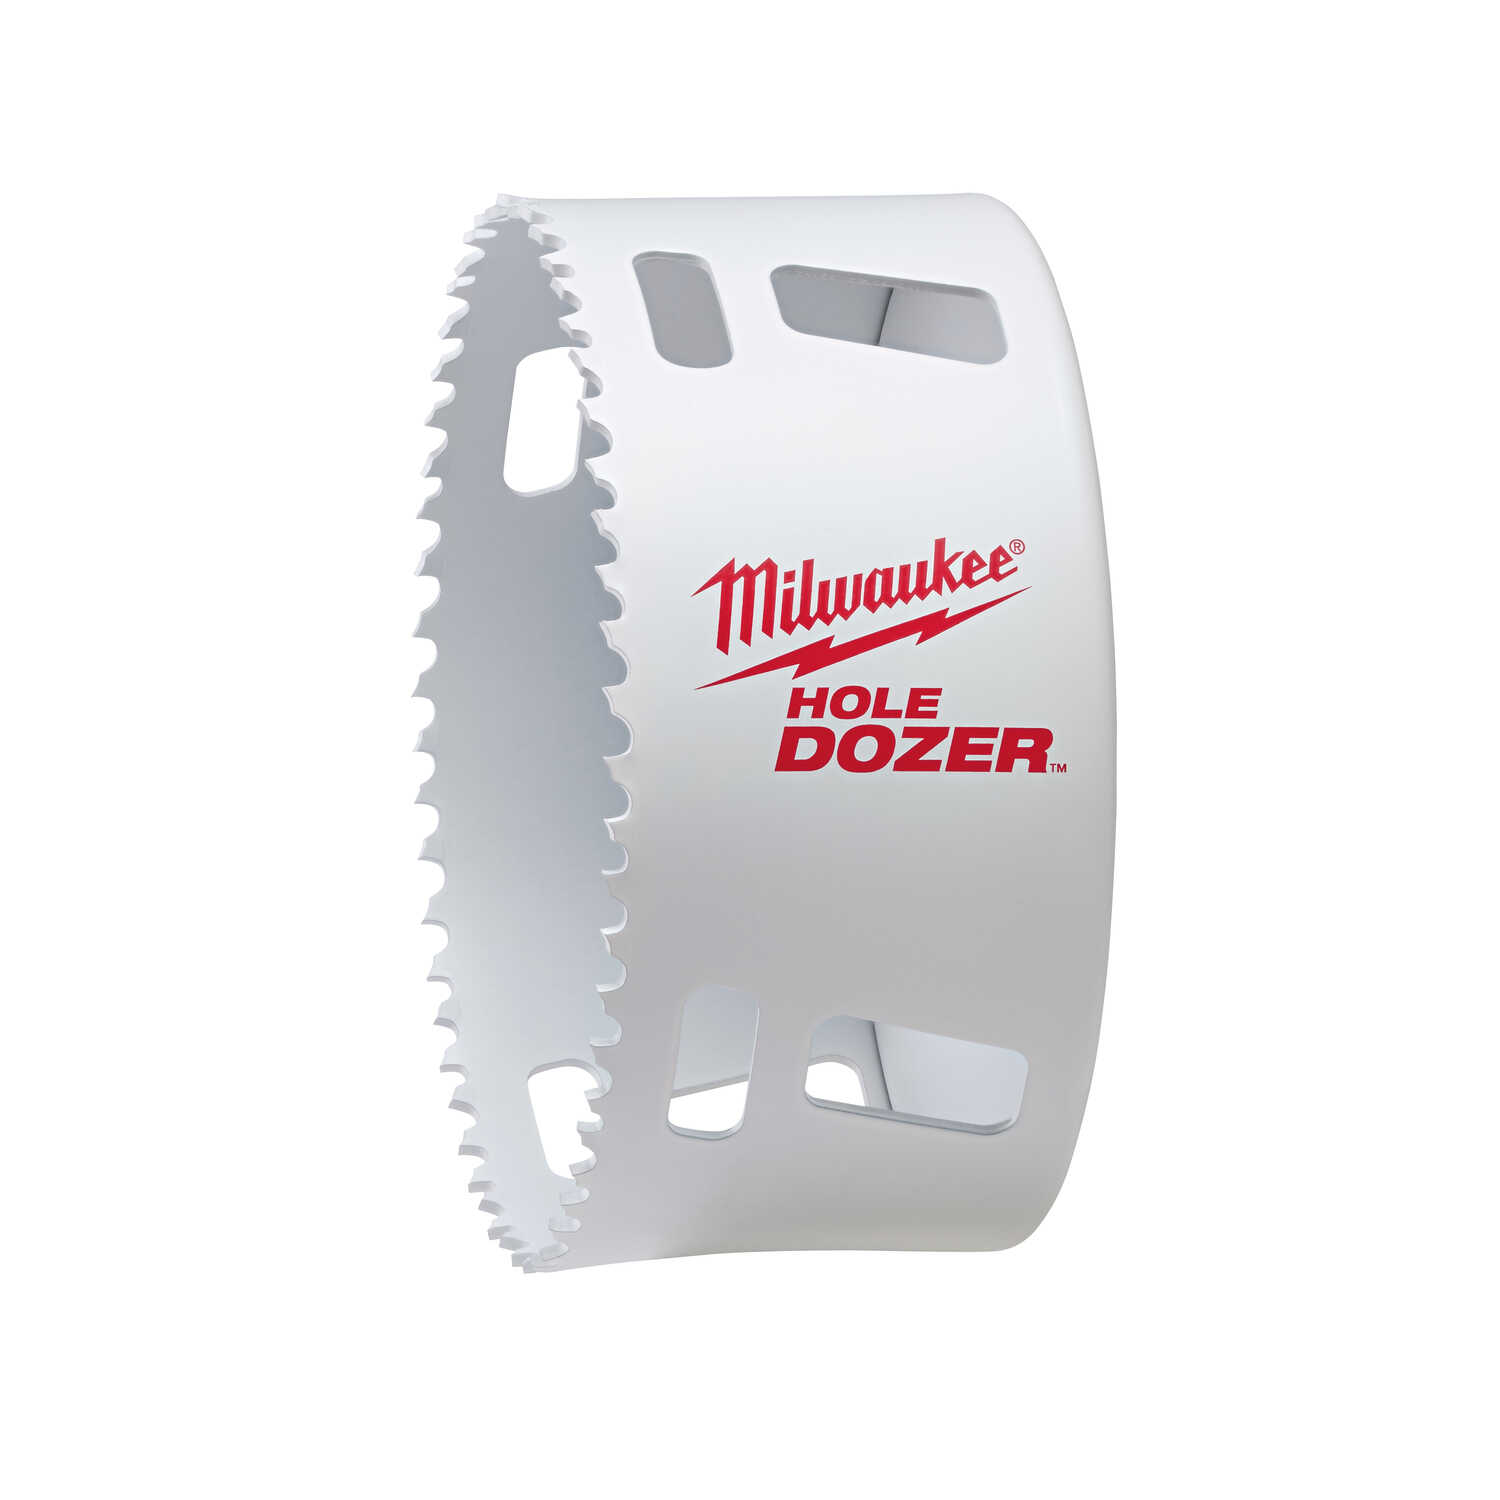 Milwaukee  Hole Dozer  4 in. Dia. x 2.6 in. L Hole Saw  1/4 in. 1 pc. Bi-Metal